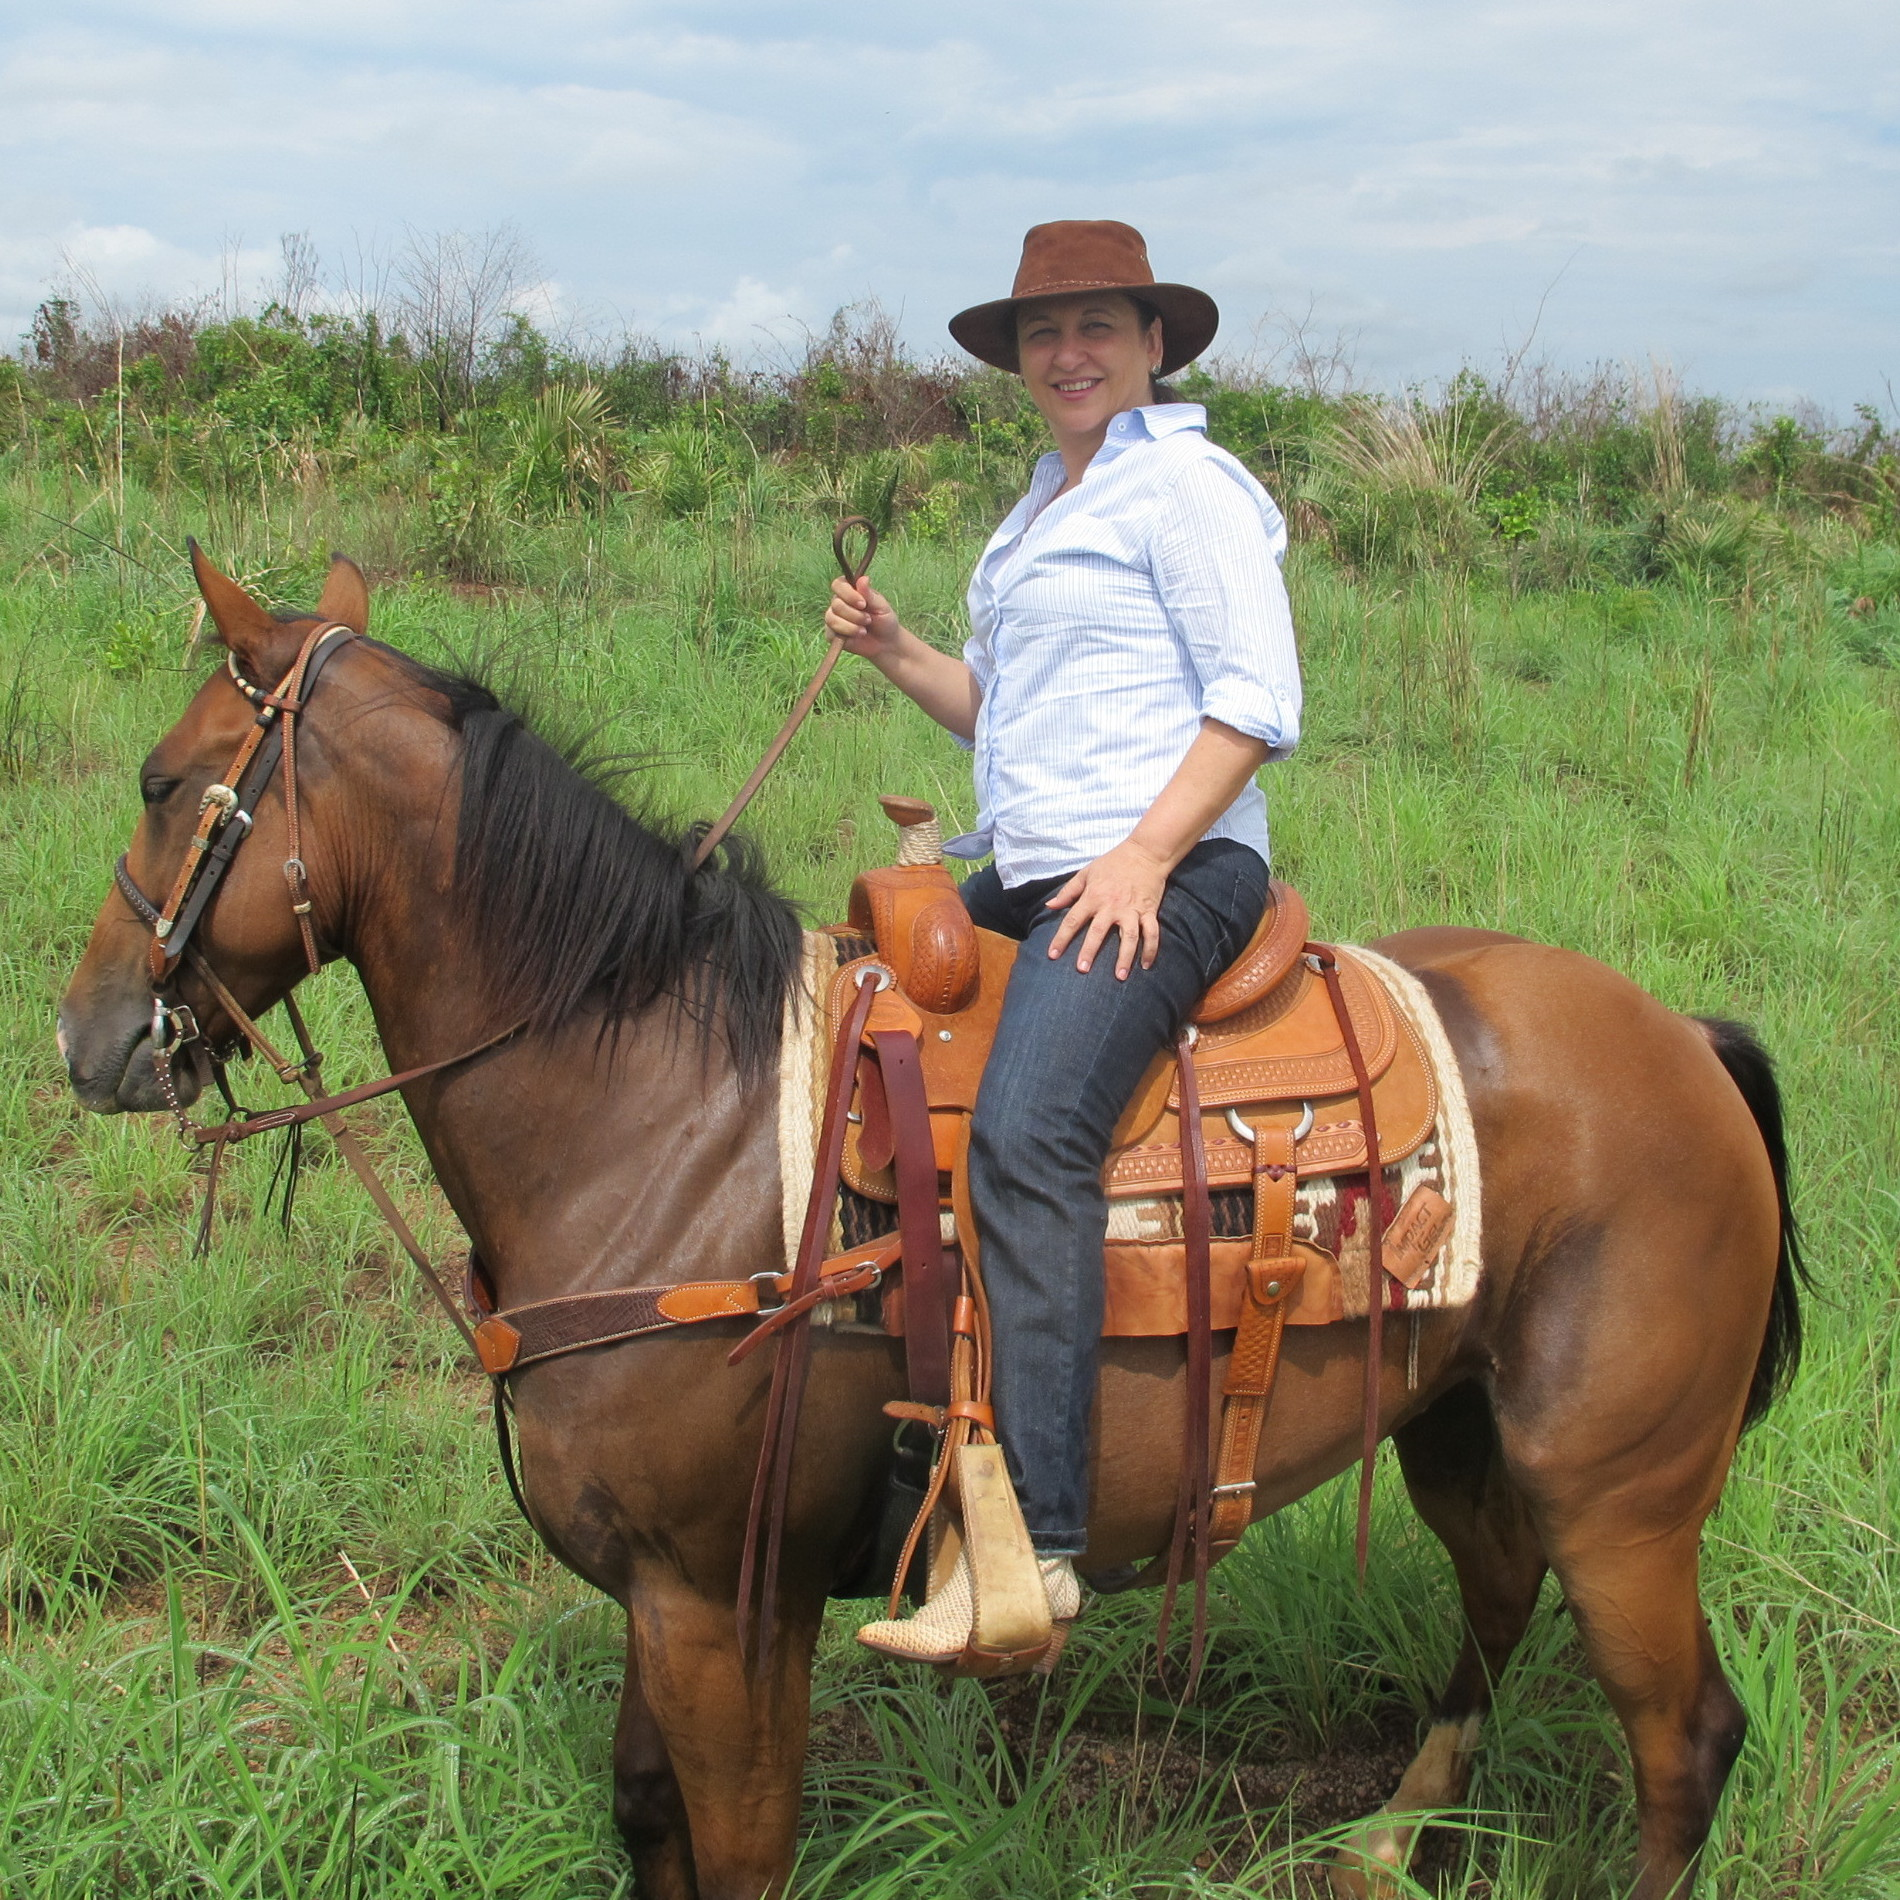 Abreu surveys the farm she owns in Tocantins state in north-central Brazil, on horseback.